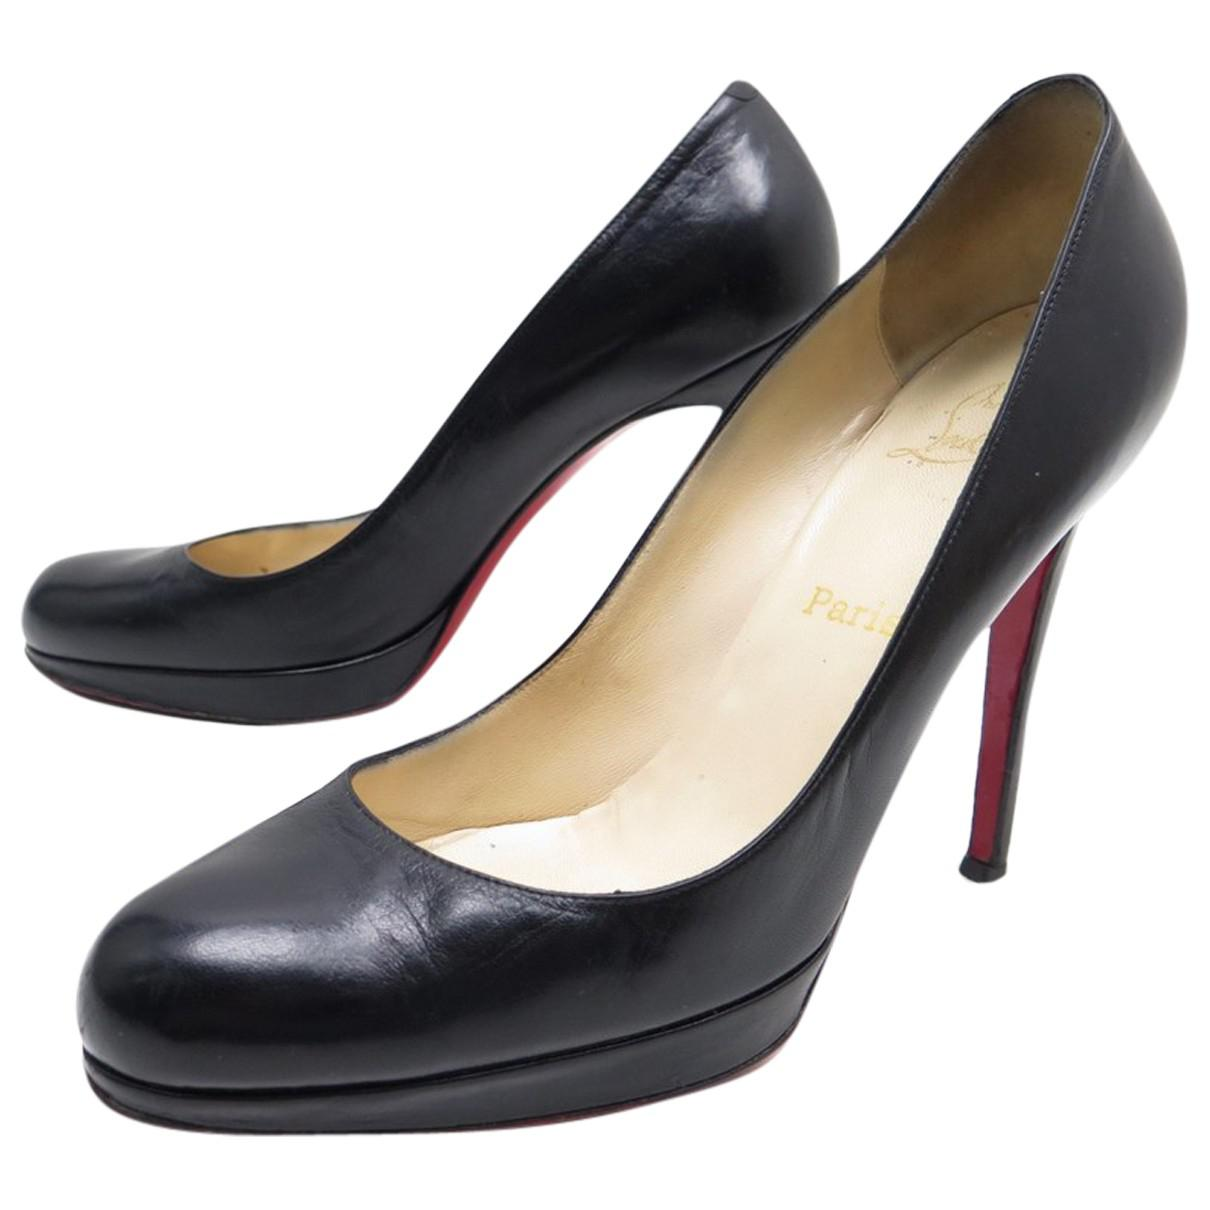 14fc34350c Lyst - Christian Louboutin Pre-owned Simple Pump Leather Heels in Black